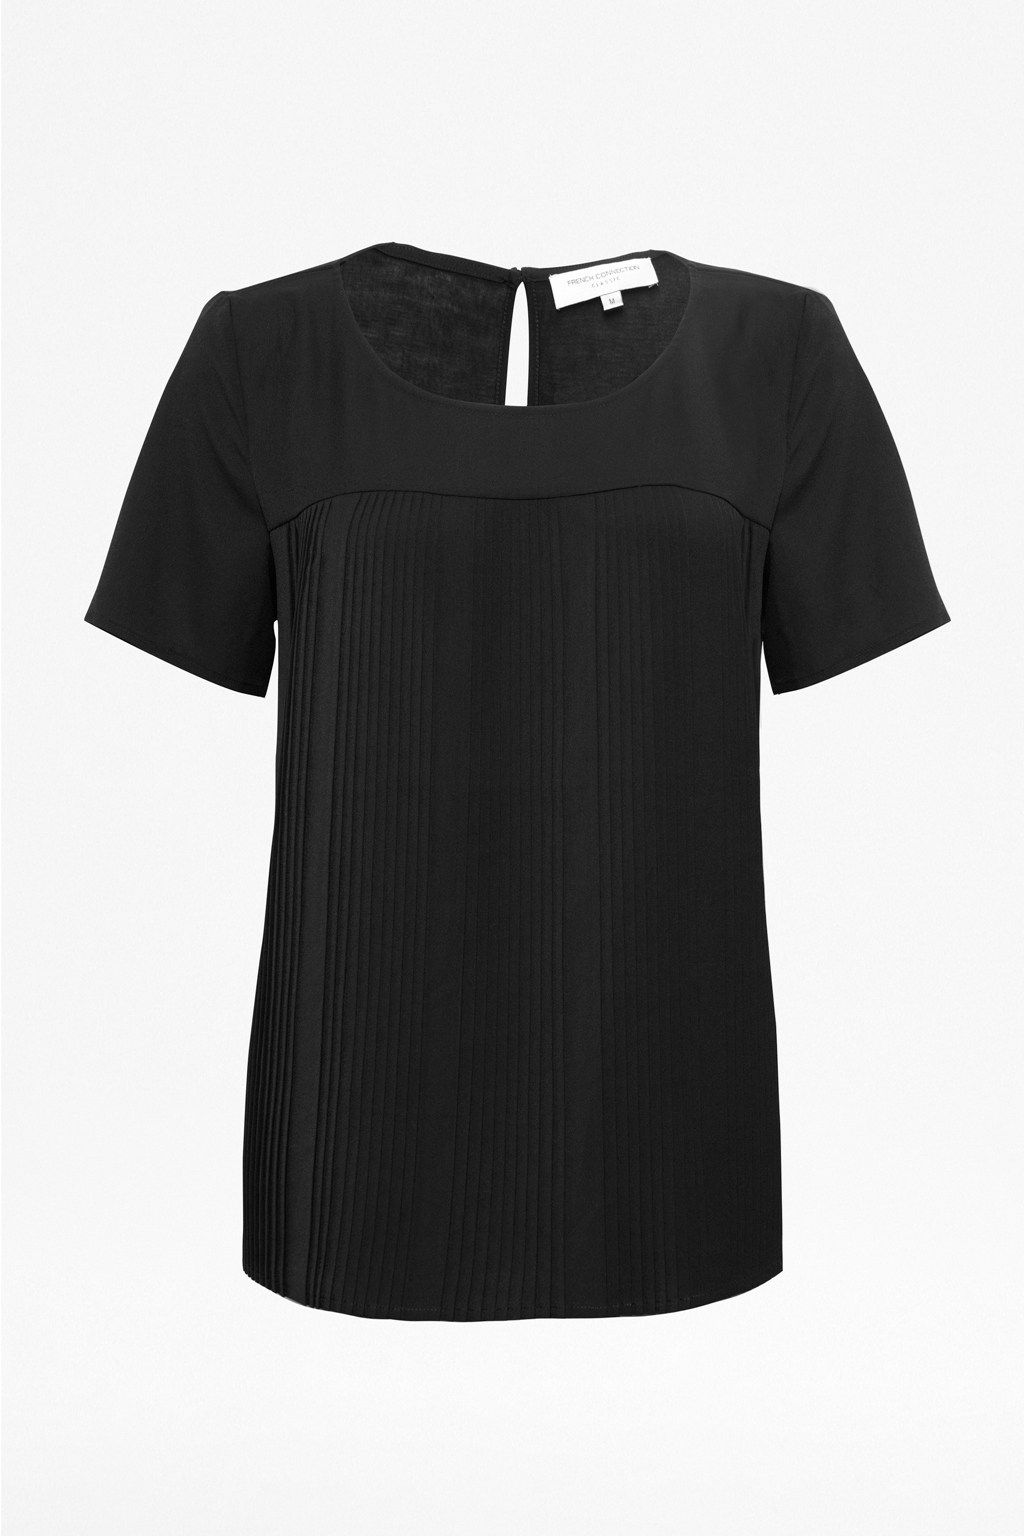 Polly plains pleats top